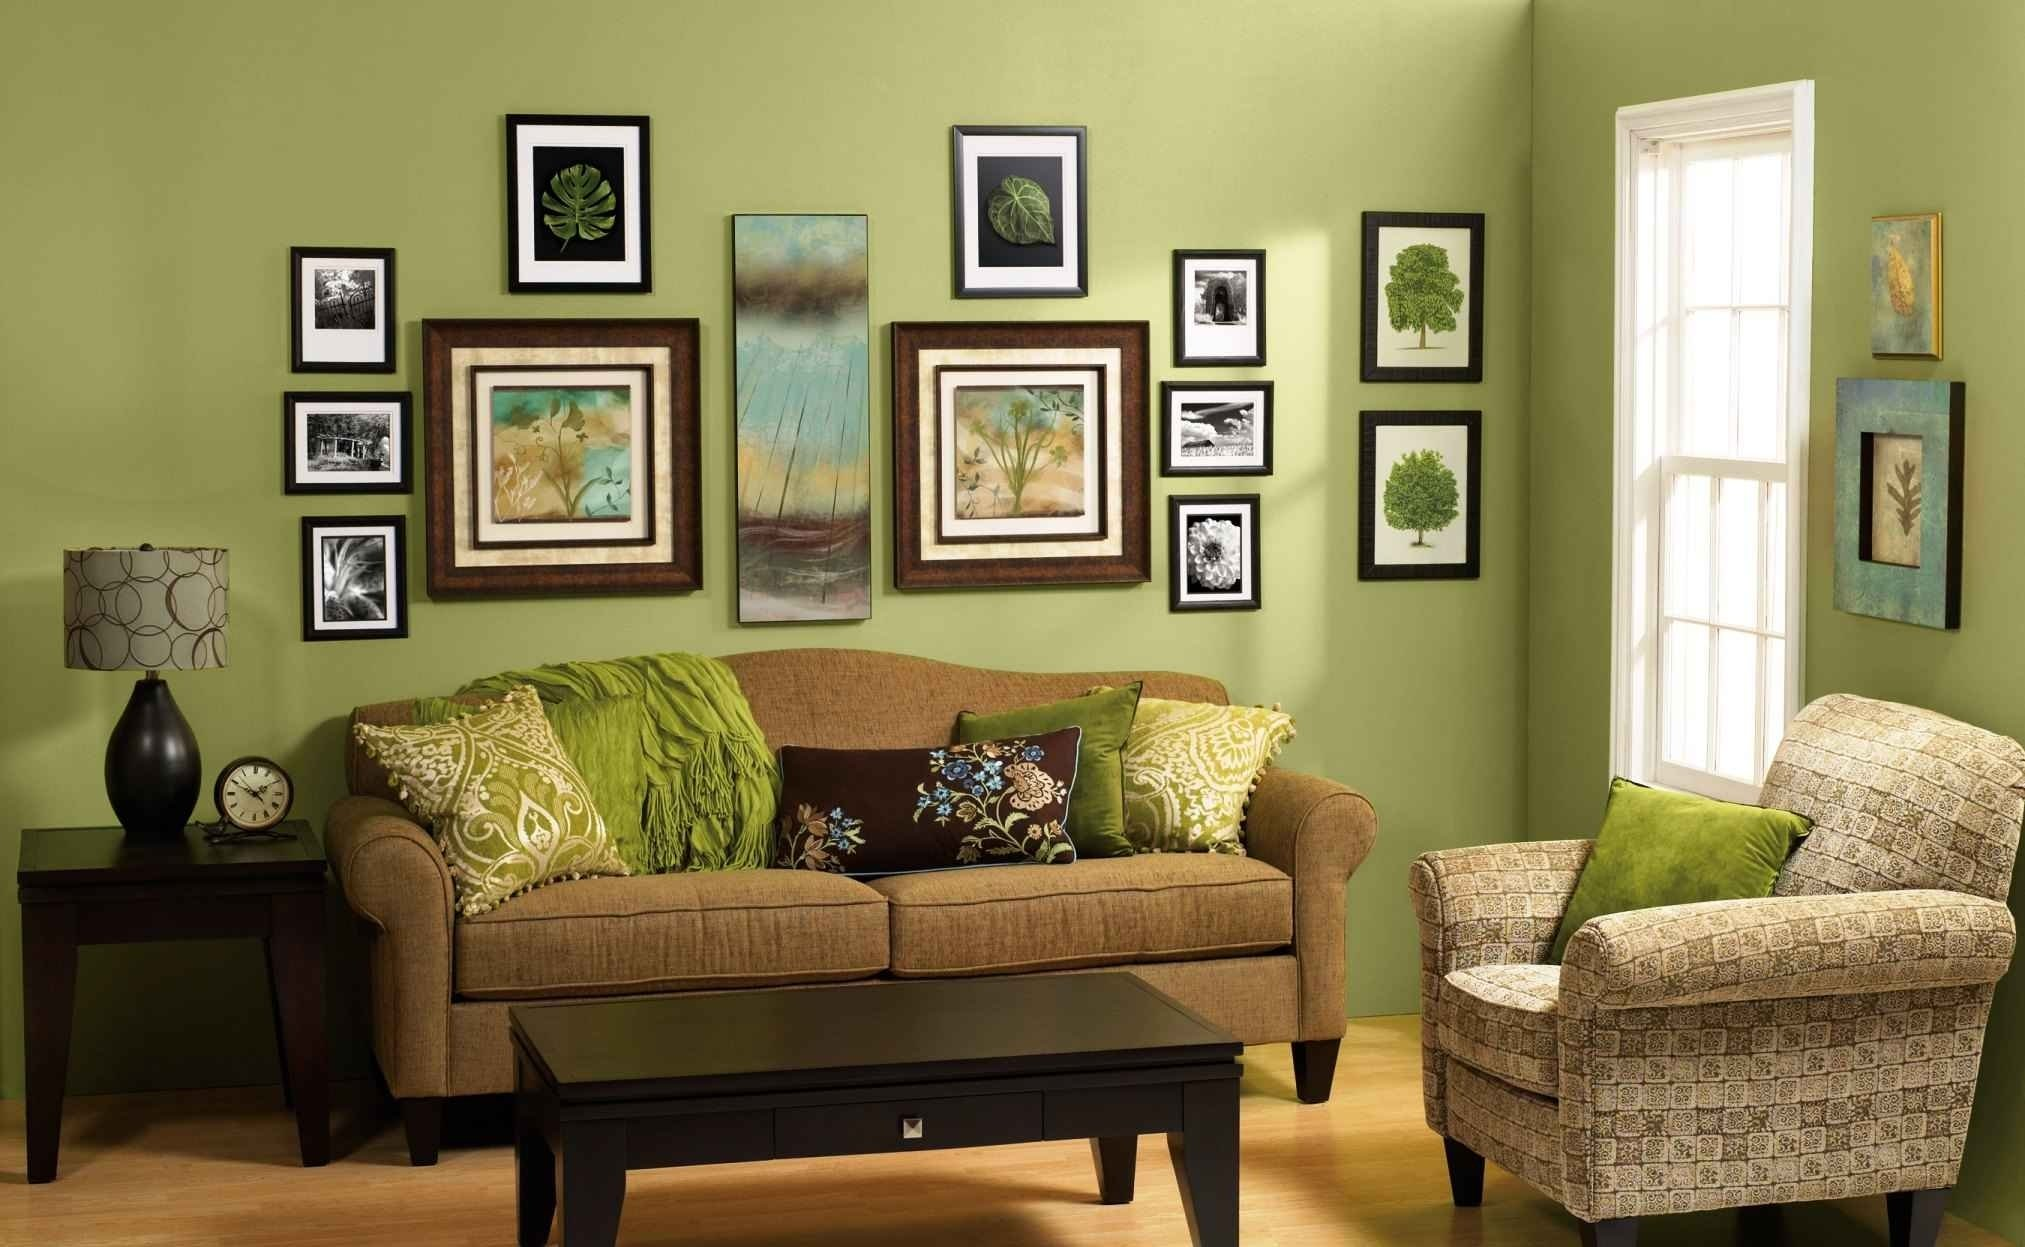 10 Attractive Living Room Decorating Ideas For Cheap luxury budget living room decorating ideas factsonline co 2020